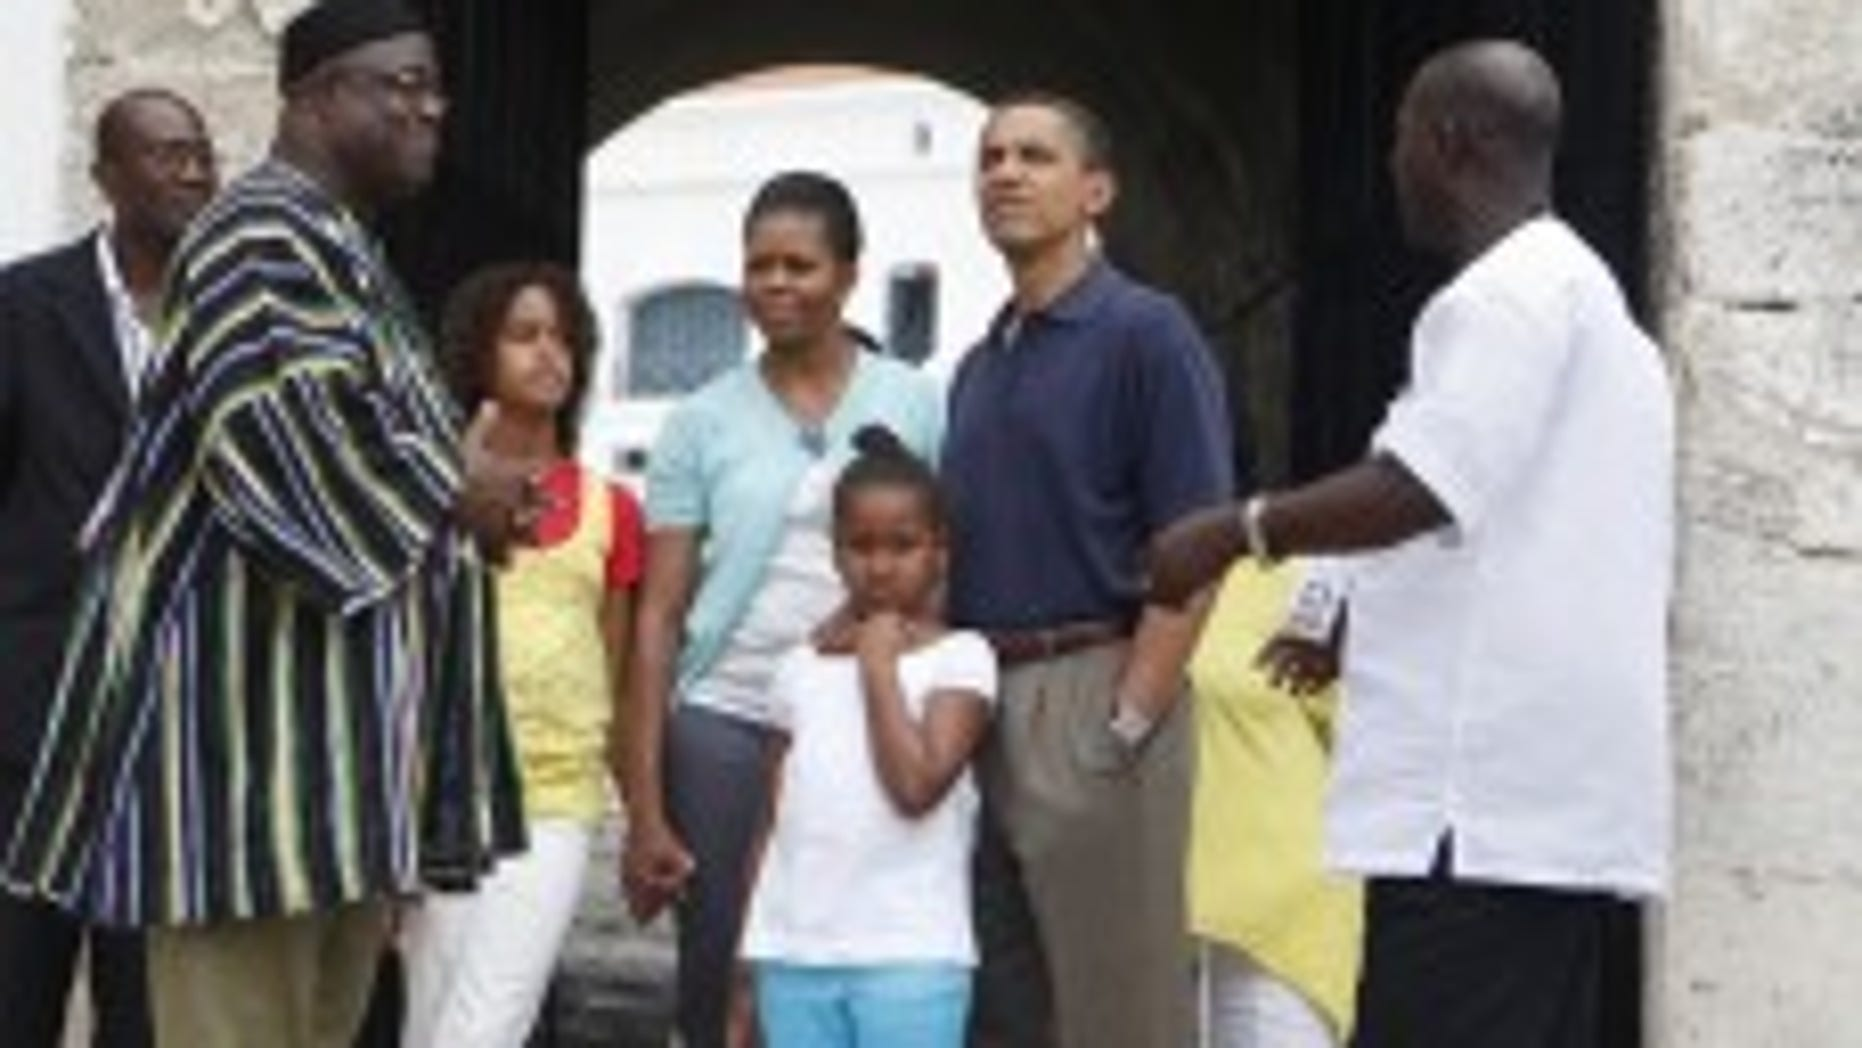 President Barack Obama, first lady Michelle Obama and their daughters Malia and Sasha on a tour of the Cape Coast Castle in Cape Coast, Ghana, Saturday, July 11, 2009. (AP Photo/Haraz N. Ghanbari)